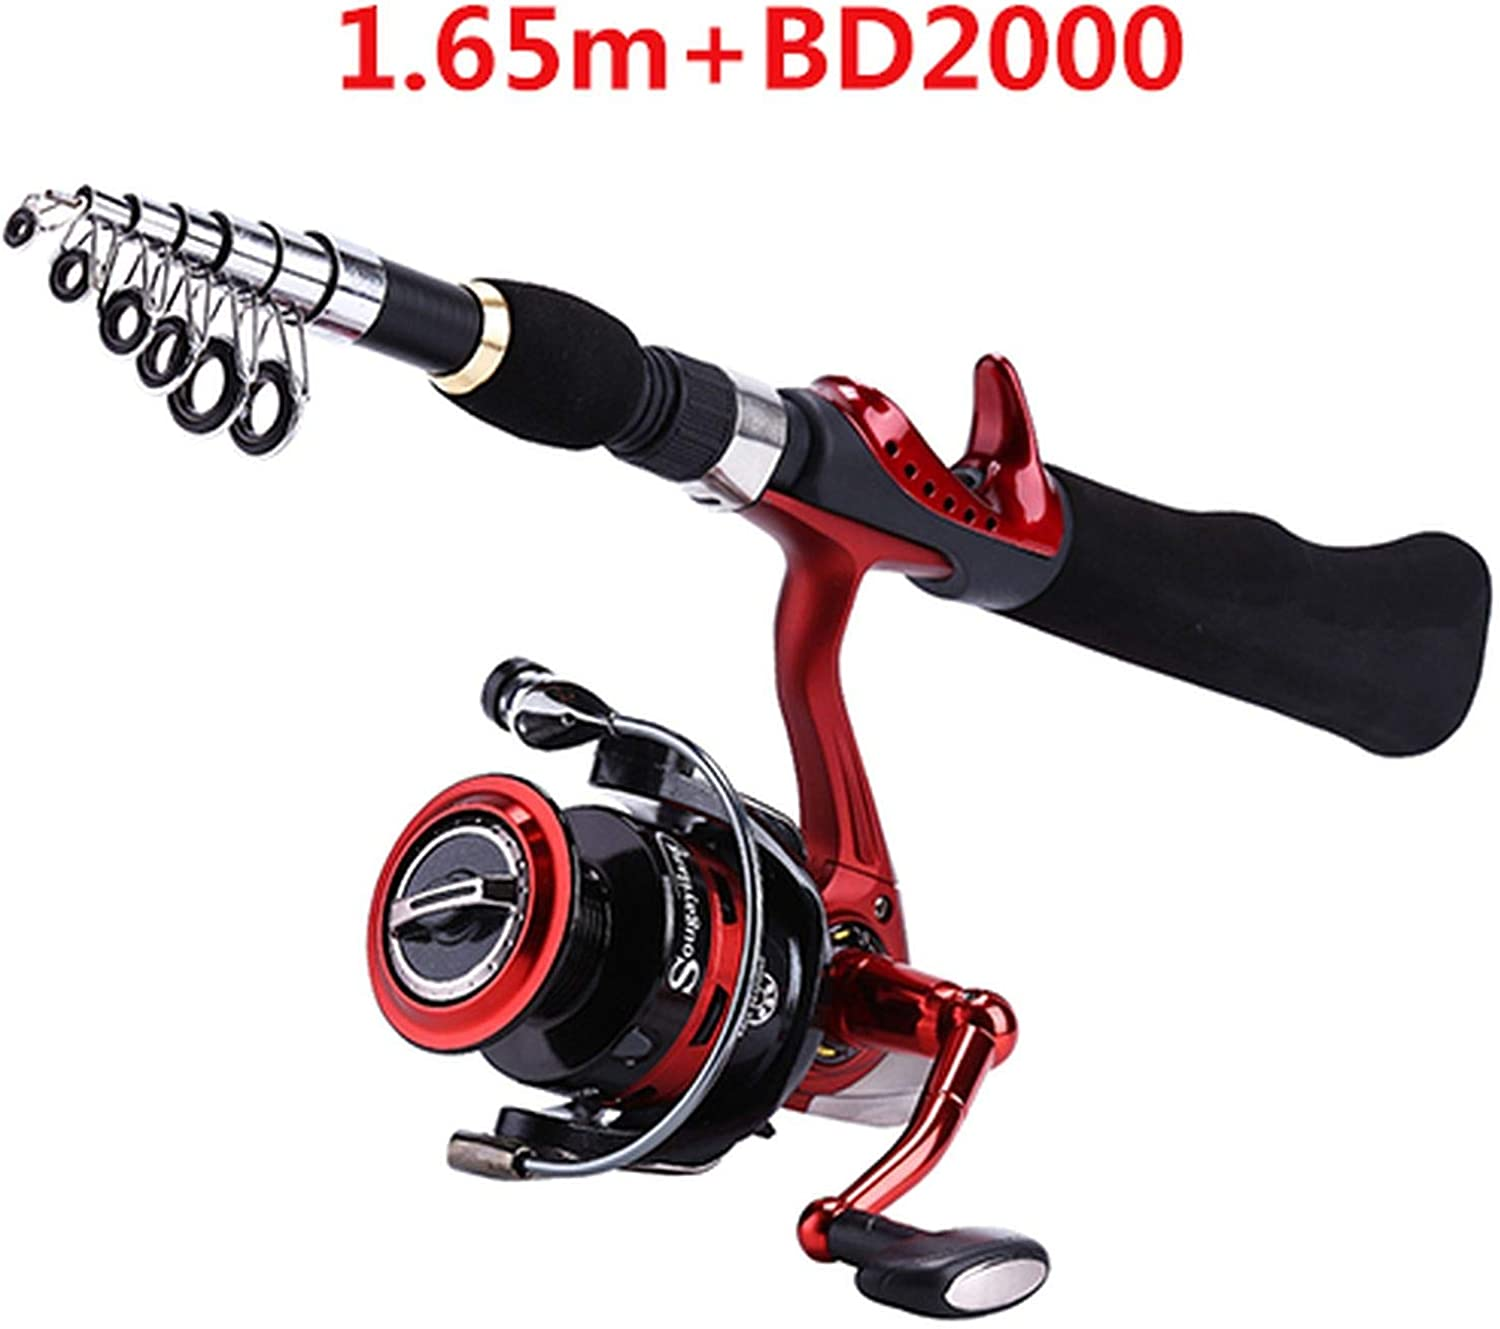 ZZmeet Spinning Fishing Rod with BD2000 Reel Set Olta 1.65m Red Portable Travel Carbon Fishing Rod Combo Fishing Pole